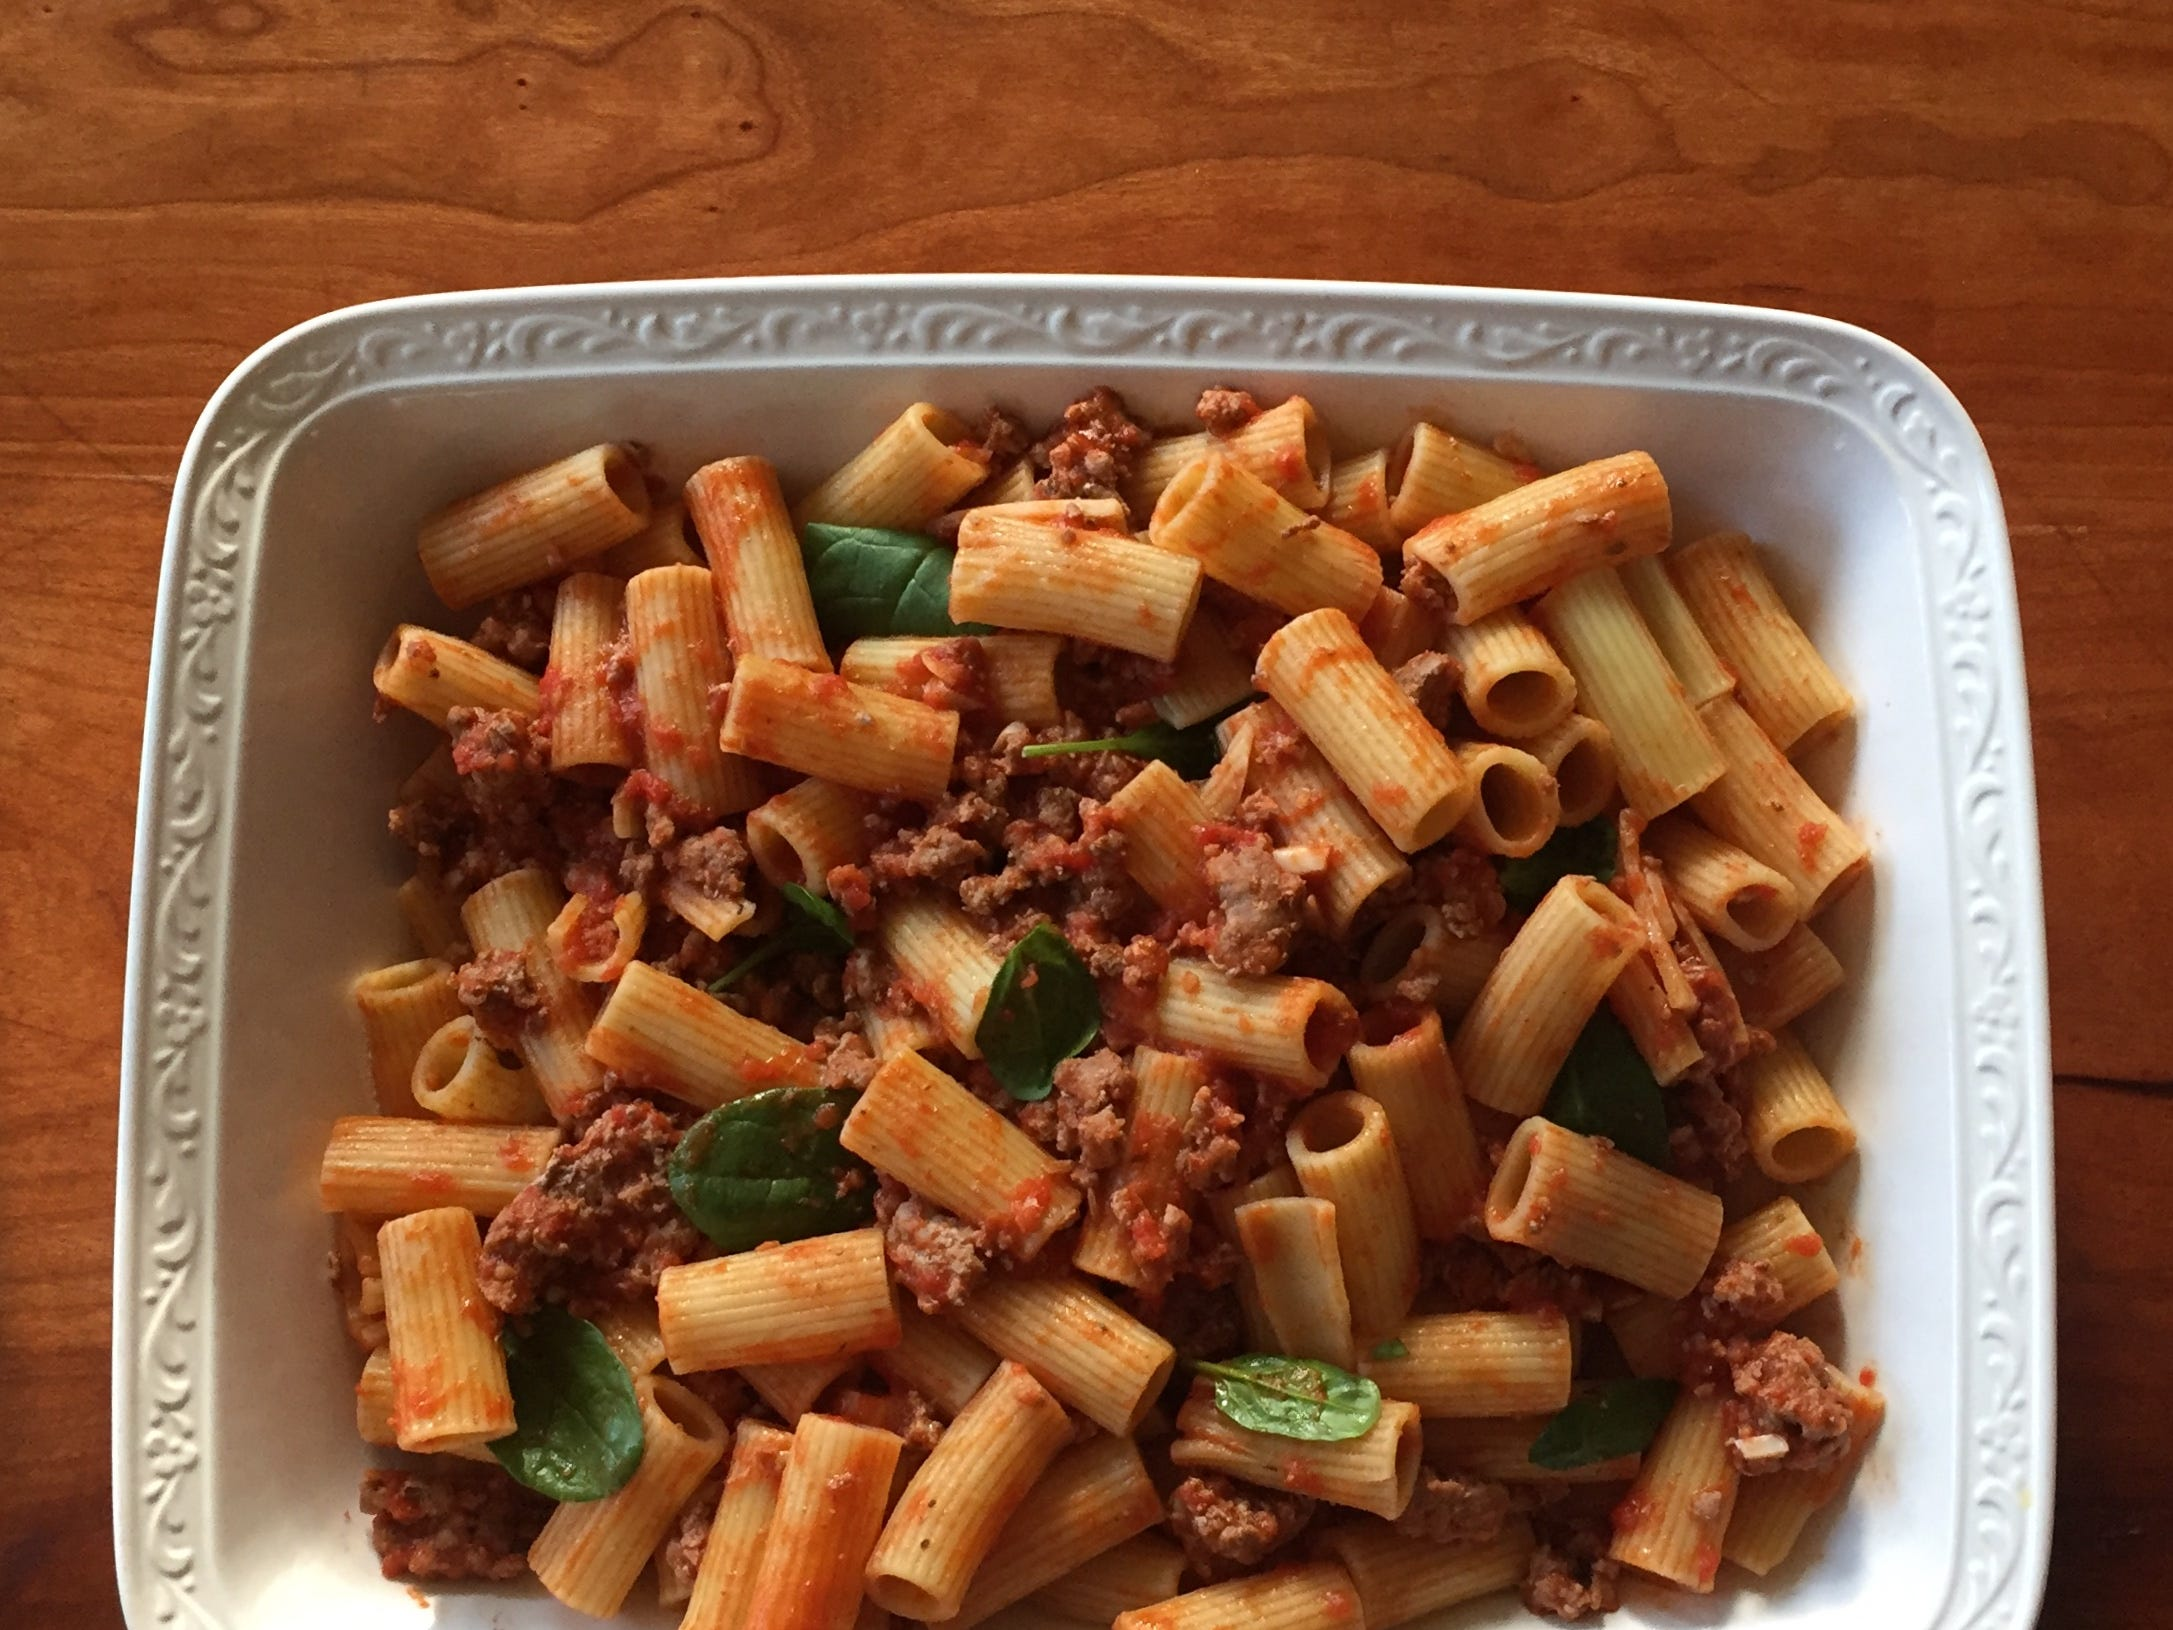 Baked pasta with sausage and spinach can be made in a 9x13 pan or split up into pan size that best fits the group you are feeding.